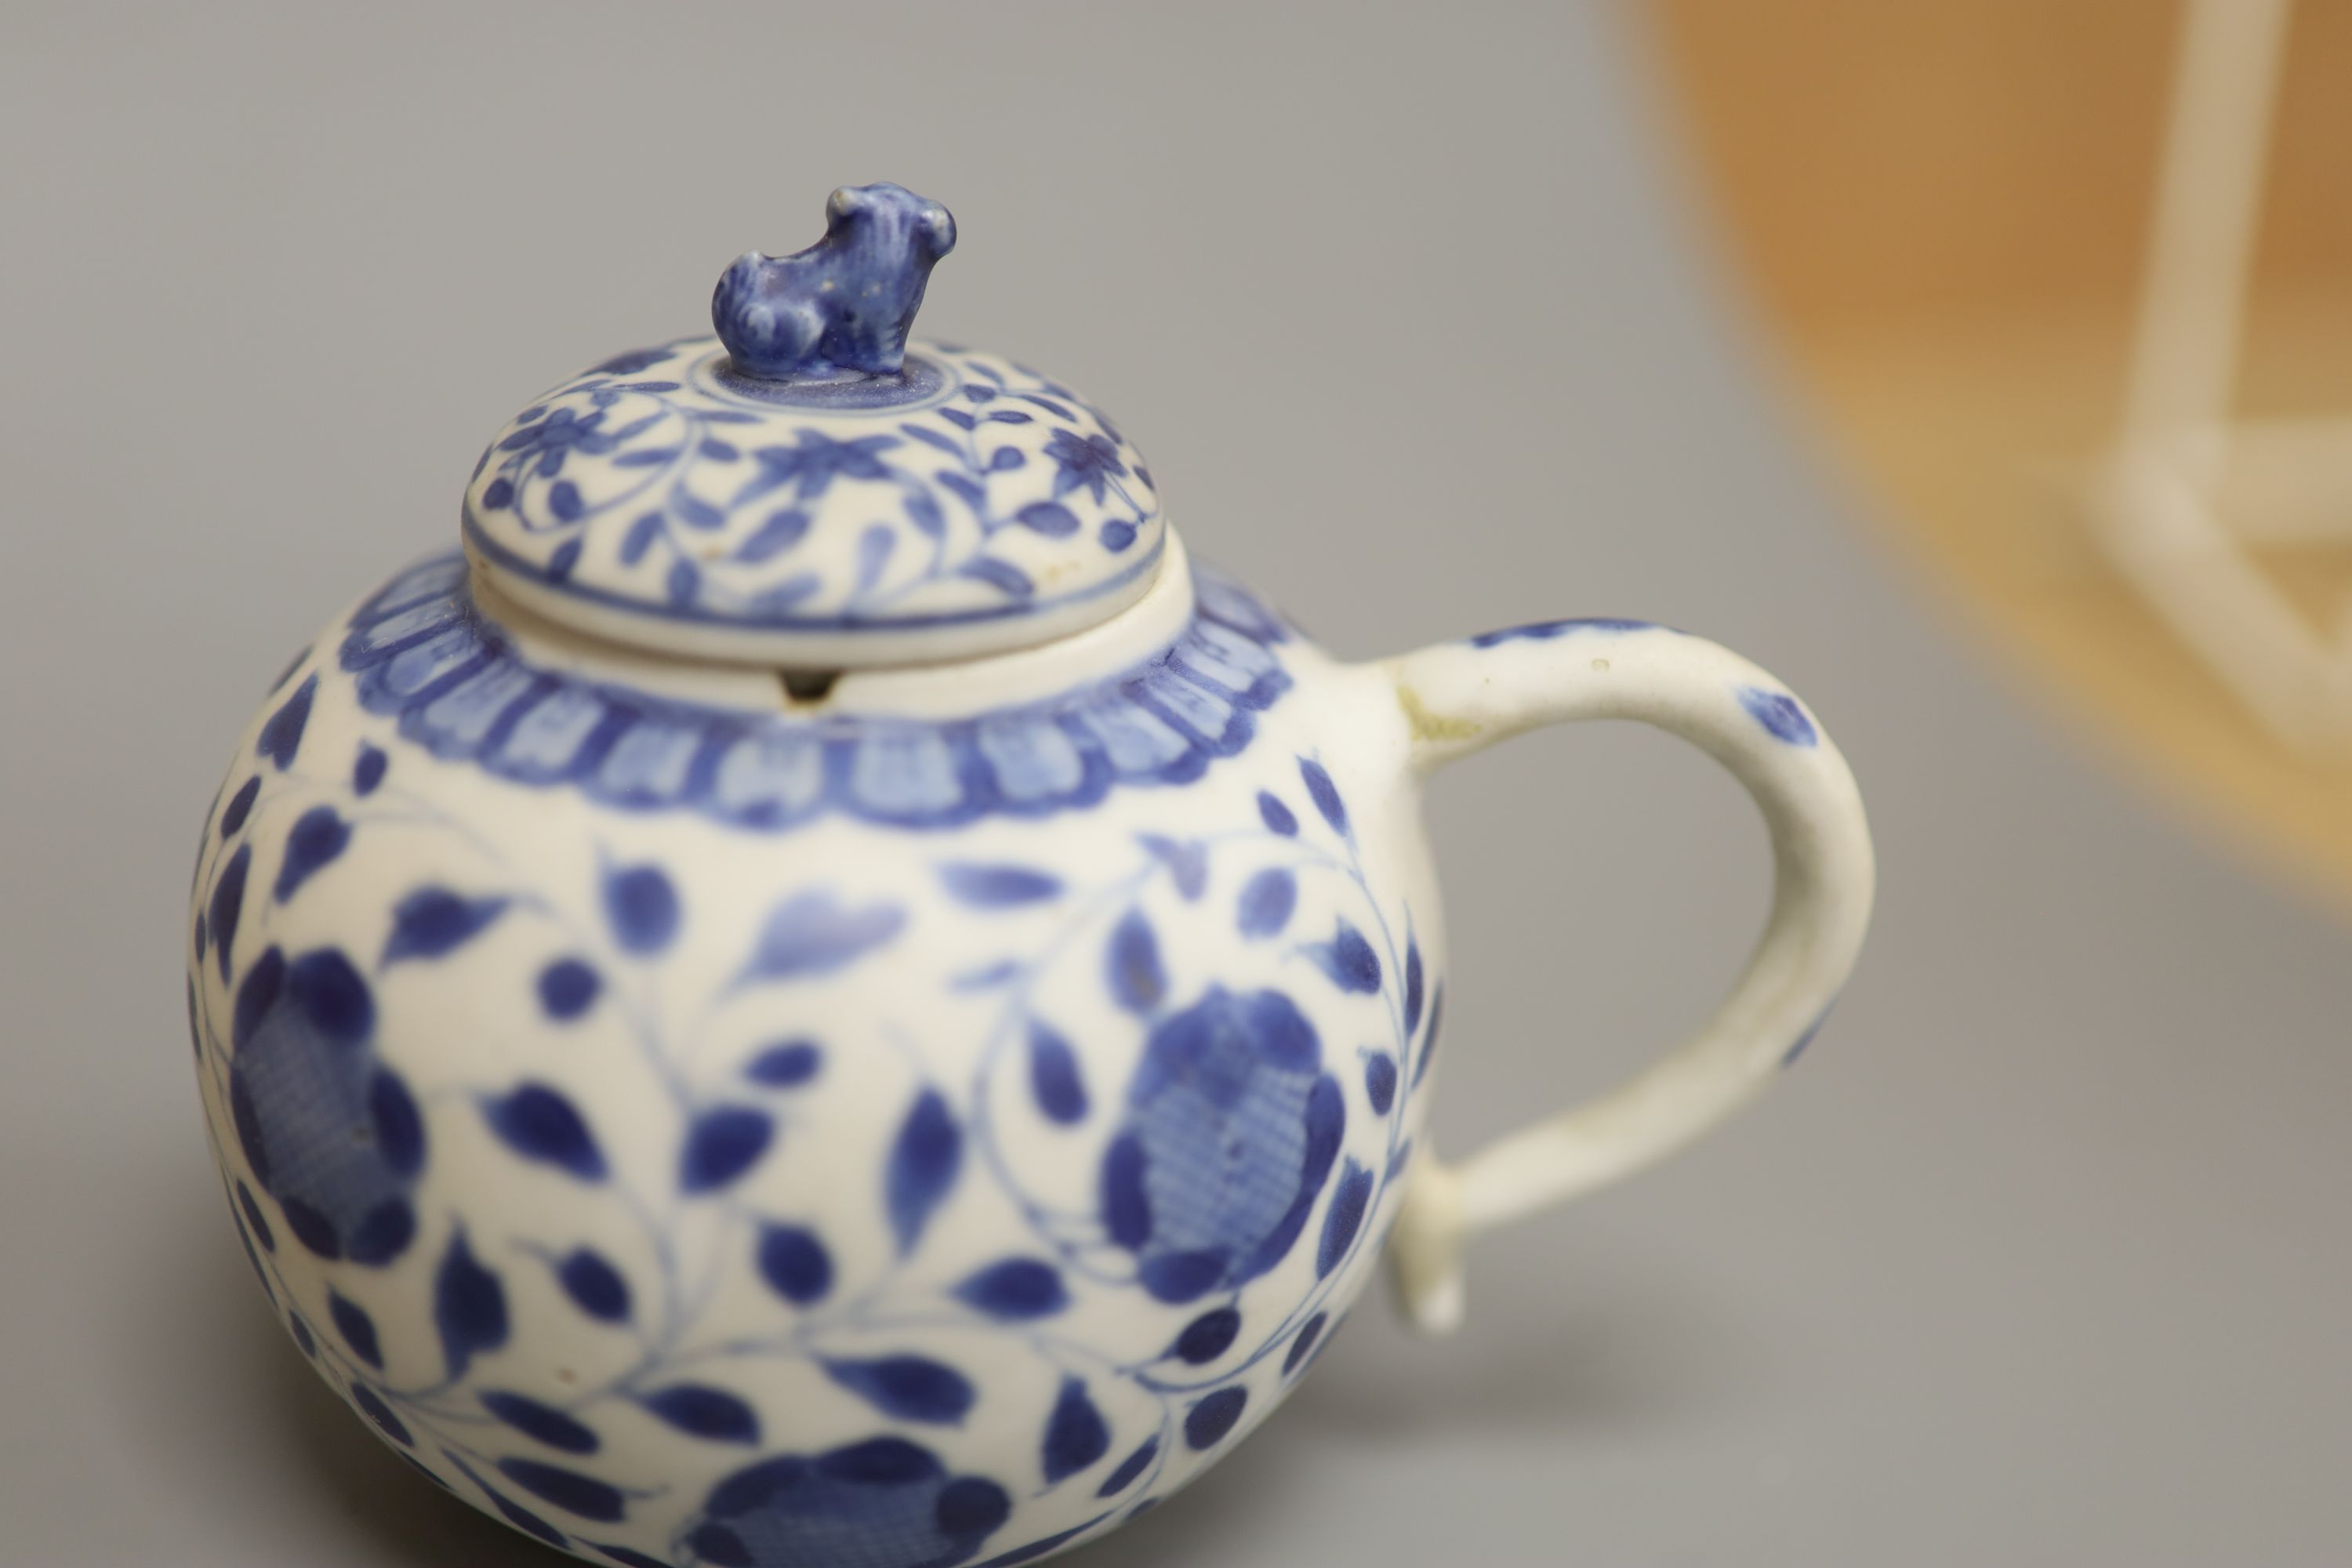 A Chinese Vungtao cargo blue and white mustard pot and cover, height 9cm - Image 3 of 7